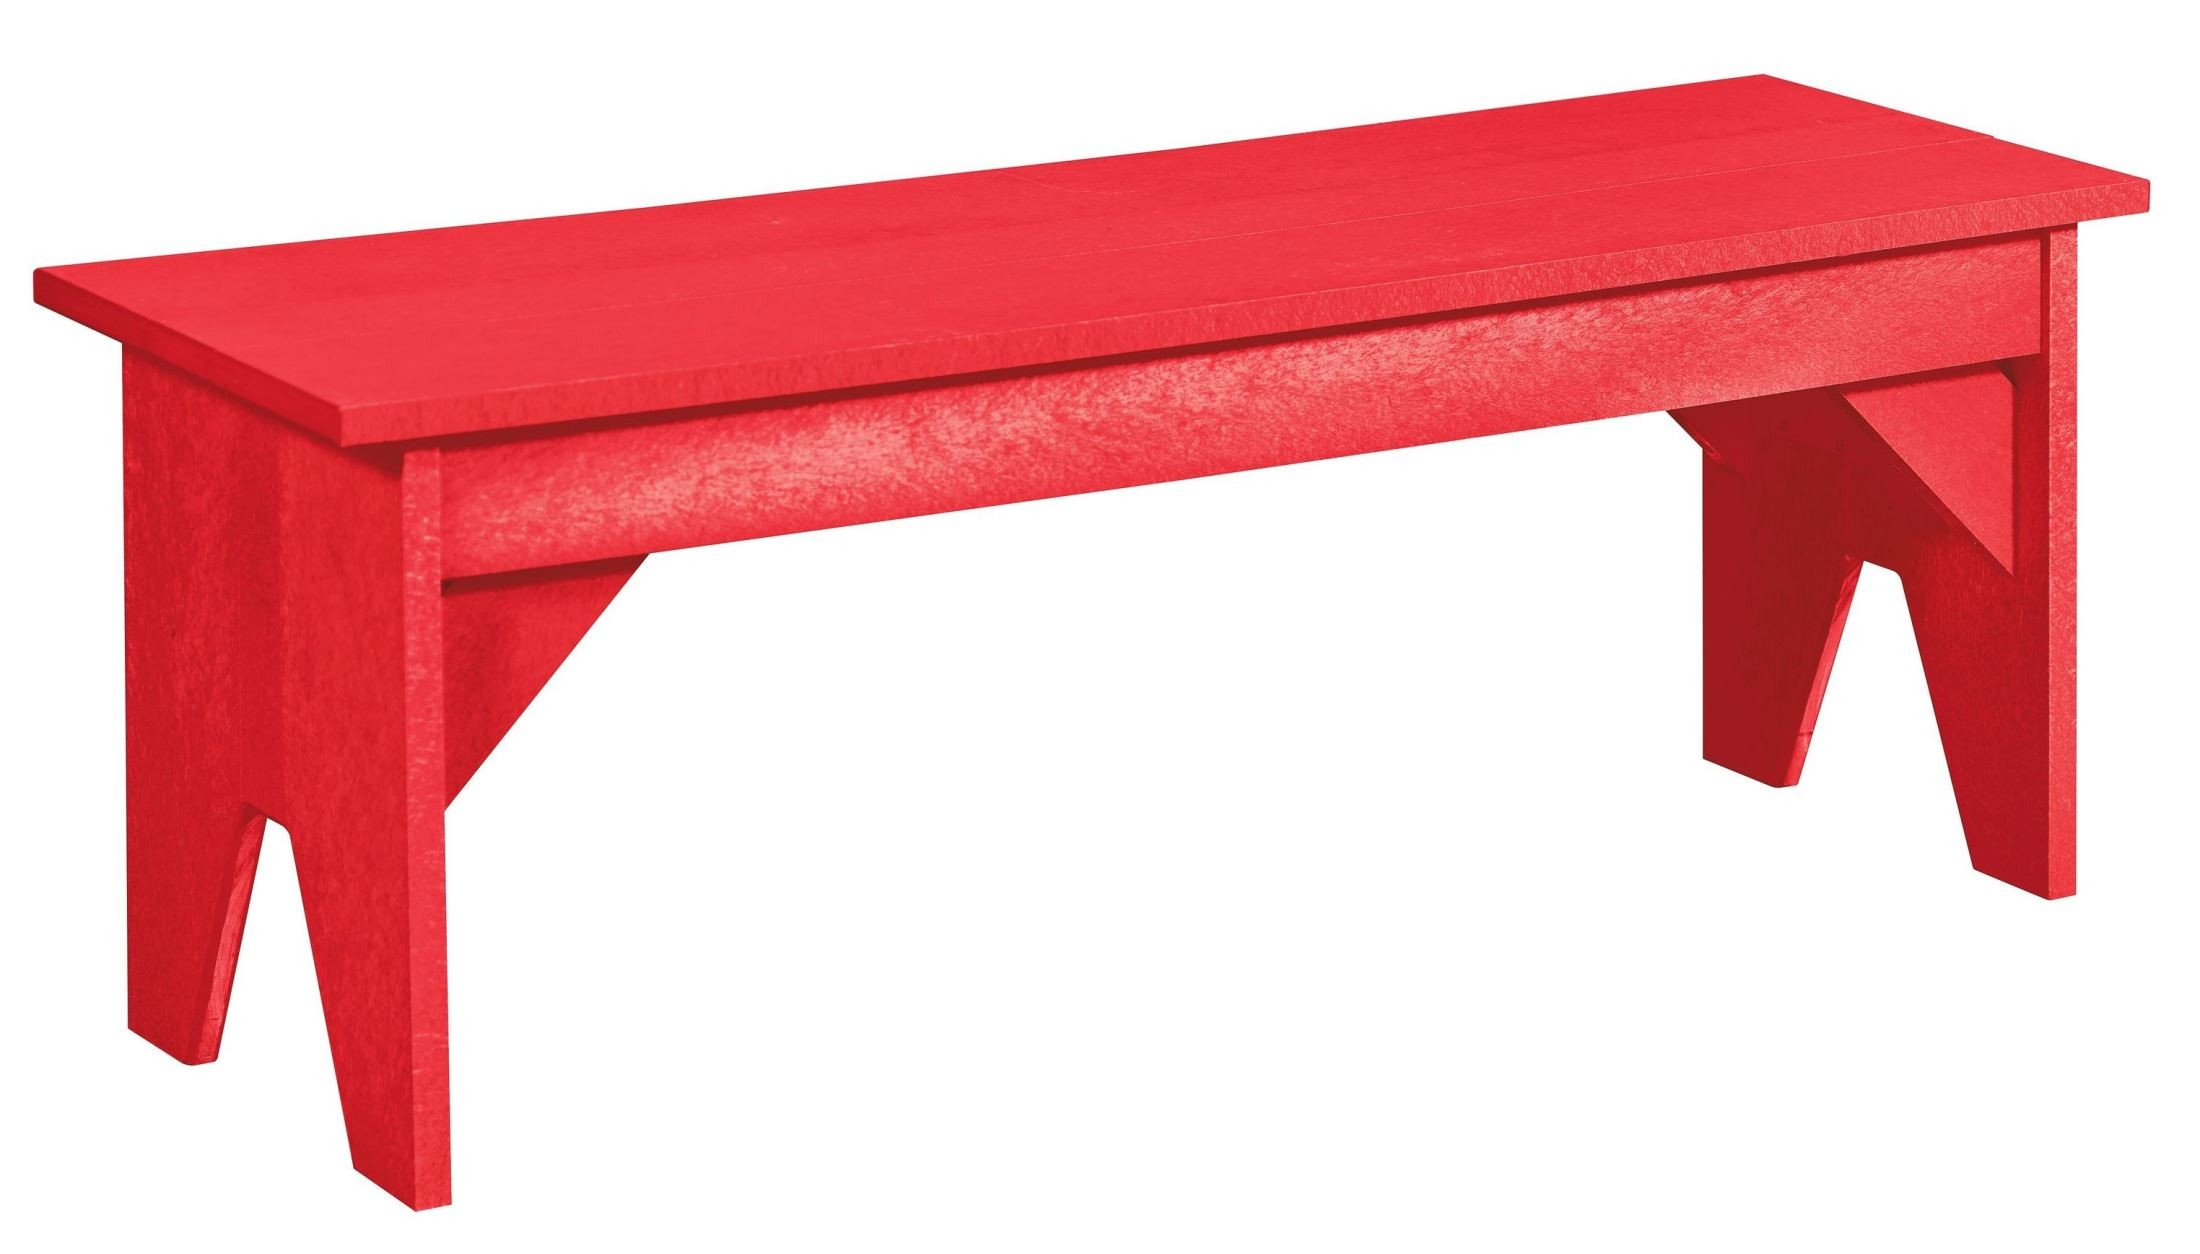 Generations Red Lifestyle Outdoor Bench From Cr Plastic B02 01 Coleman Furniture